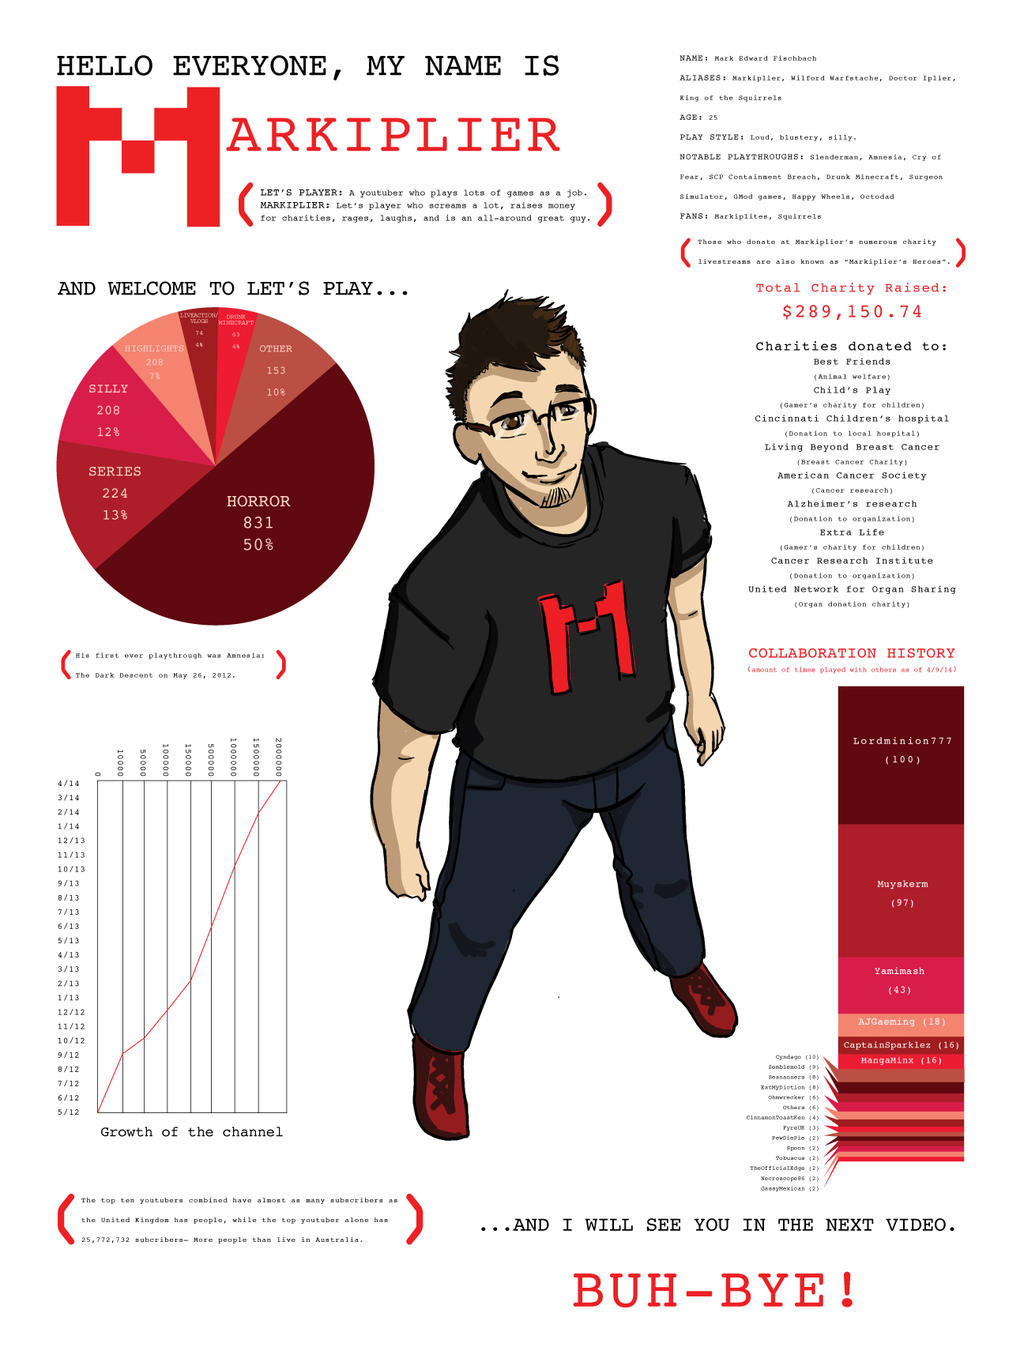 Markiplier Infographic by Override7400